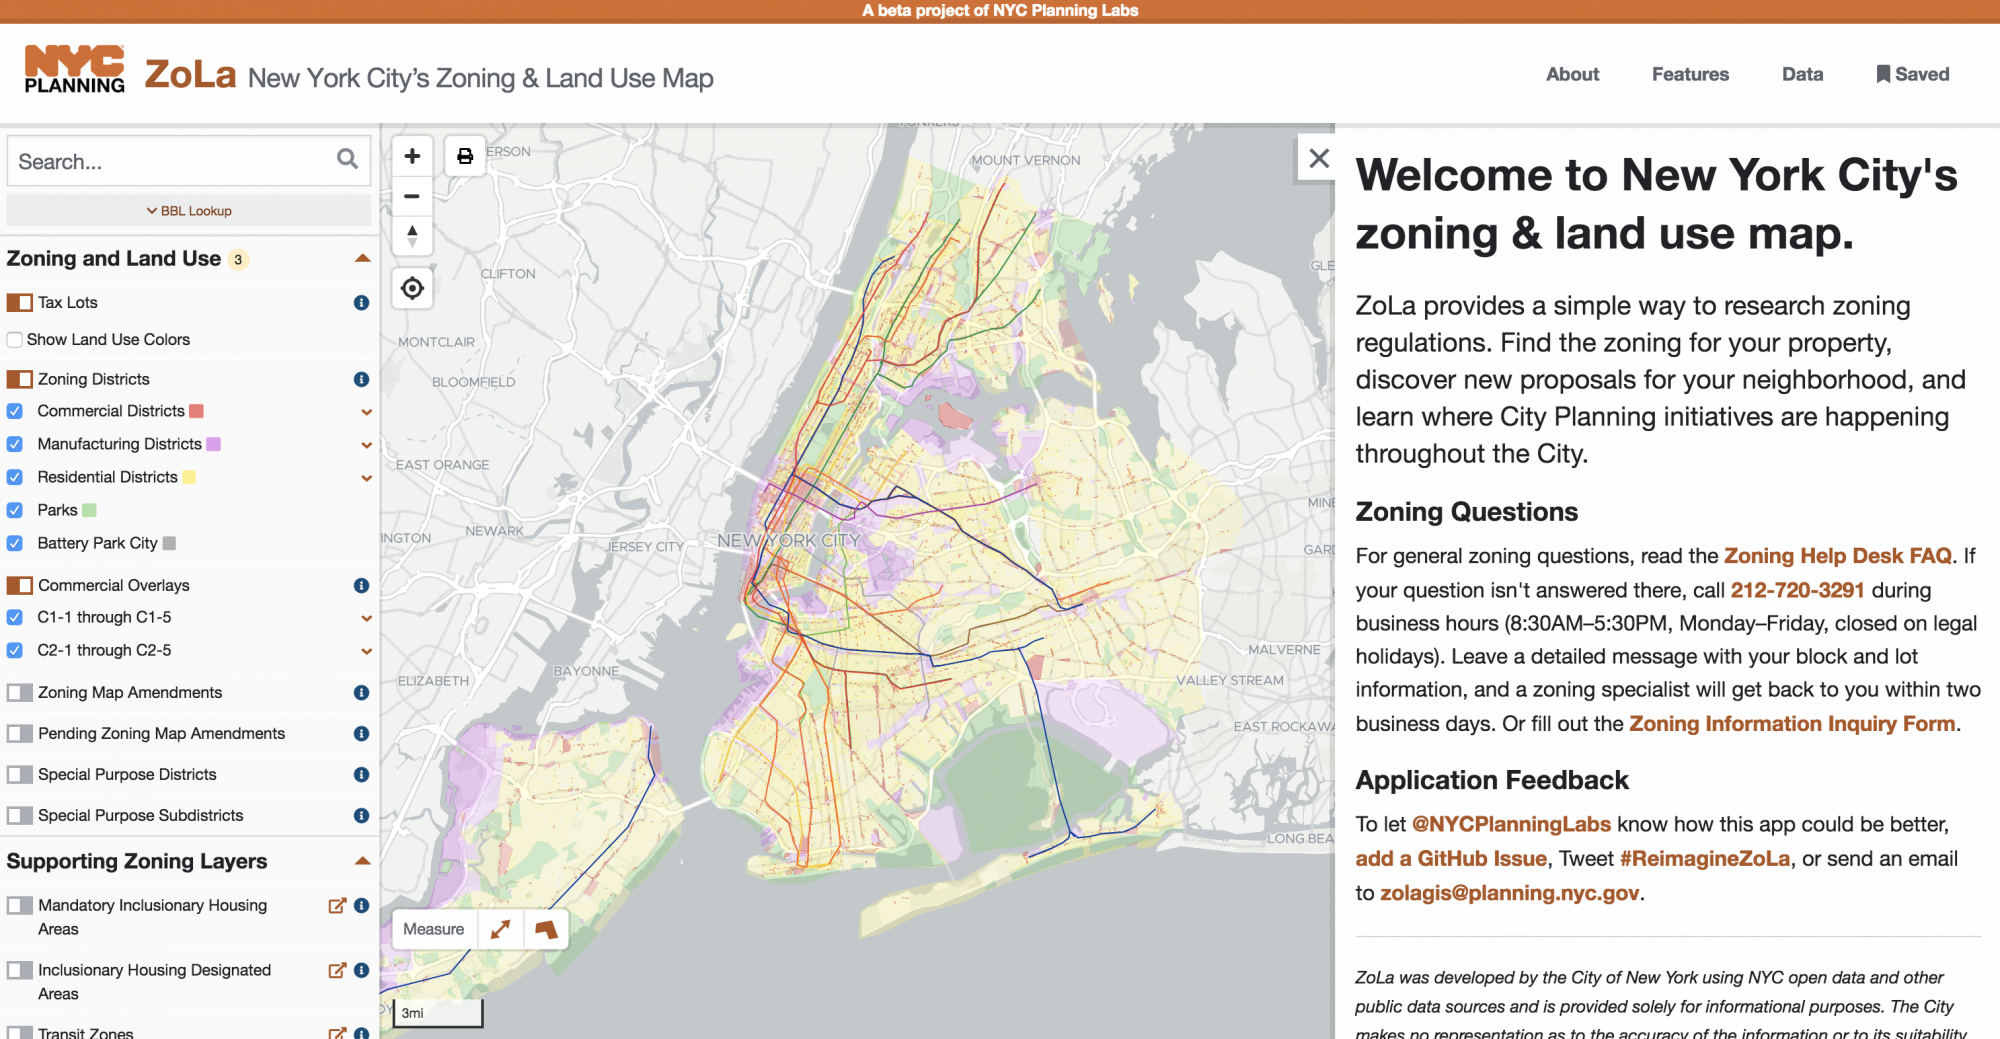 Zoning Map Nyc on nyc government map, nyc real estate map, nyc village map, nyc crime map, nyc neighborhood map, new york land map, nyc history, nyc fire district map, new york city evacuation map, nyc wetlands map, nyc density map, nyc flooding map, ny city school district map, nyc residential map, nyc gentrification map, nyc school districts, nyc library map, nyc planning map, chelsea nyc map, nyc safety map,